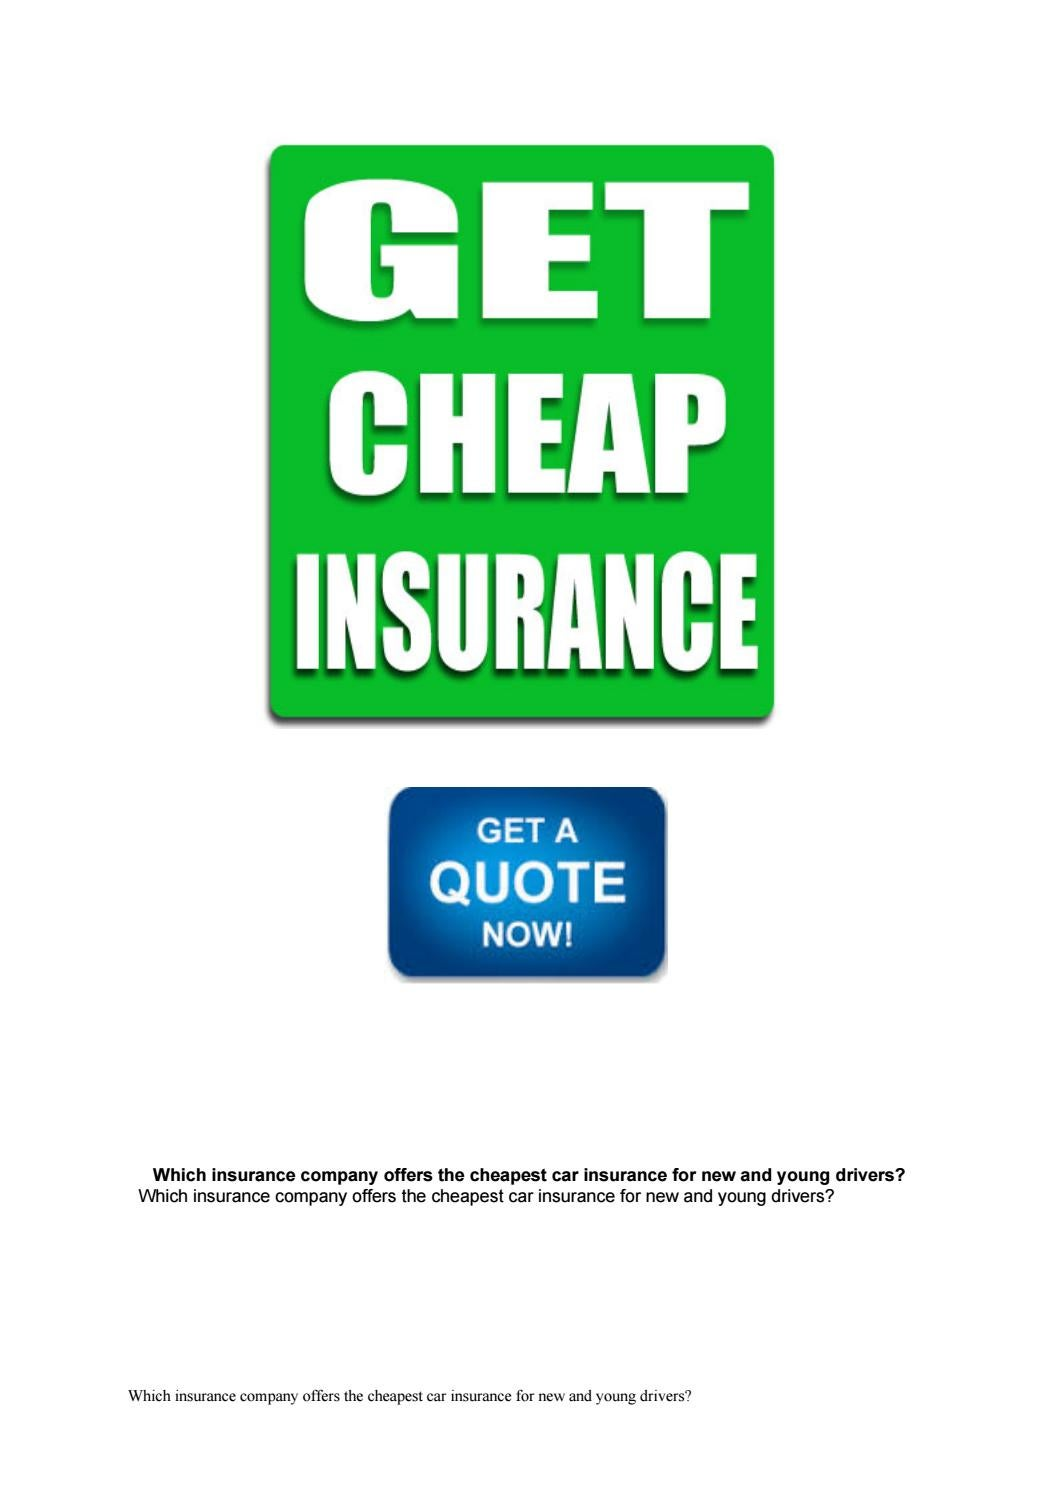 Which Insurance Company Offers The Cheapest Car Insurance For New